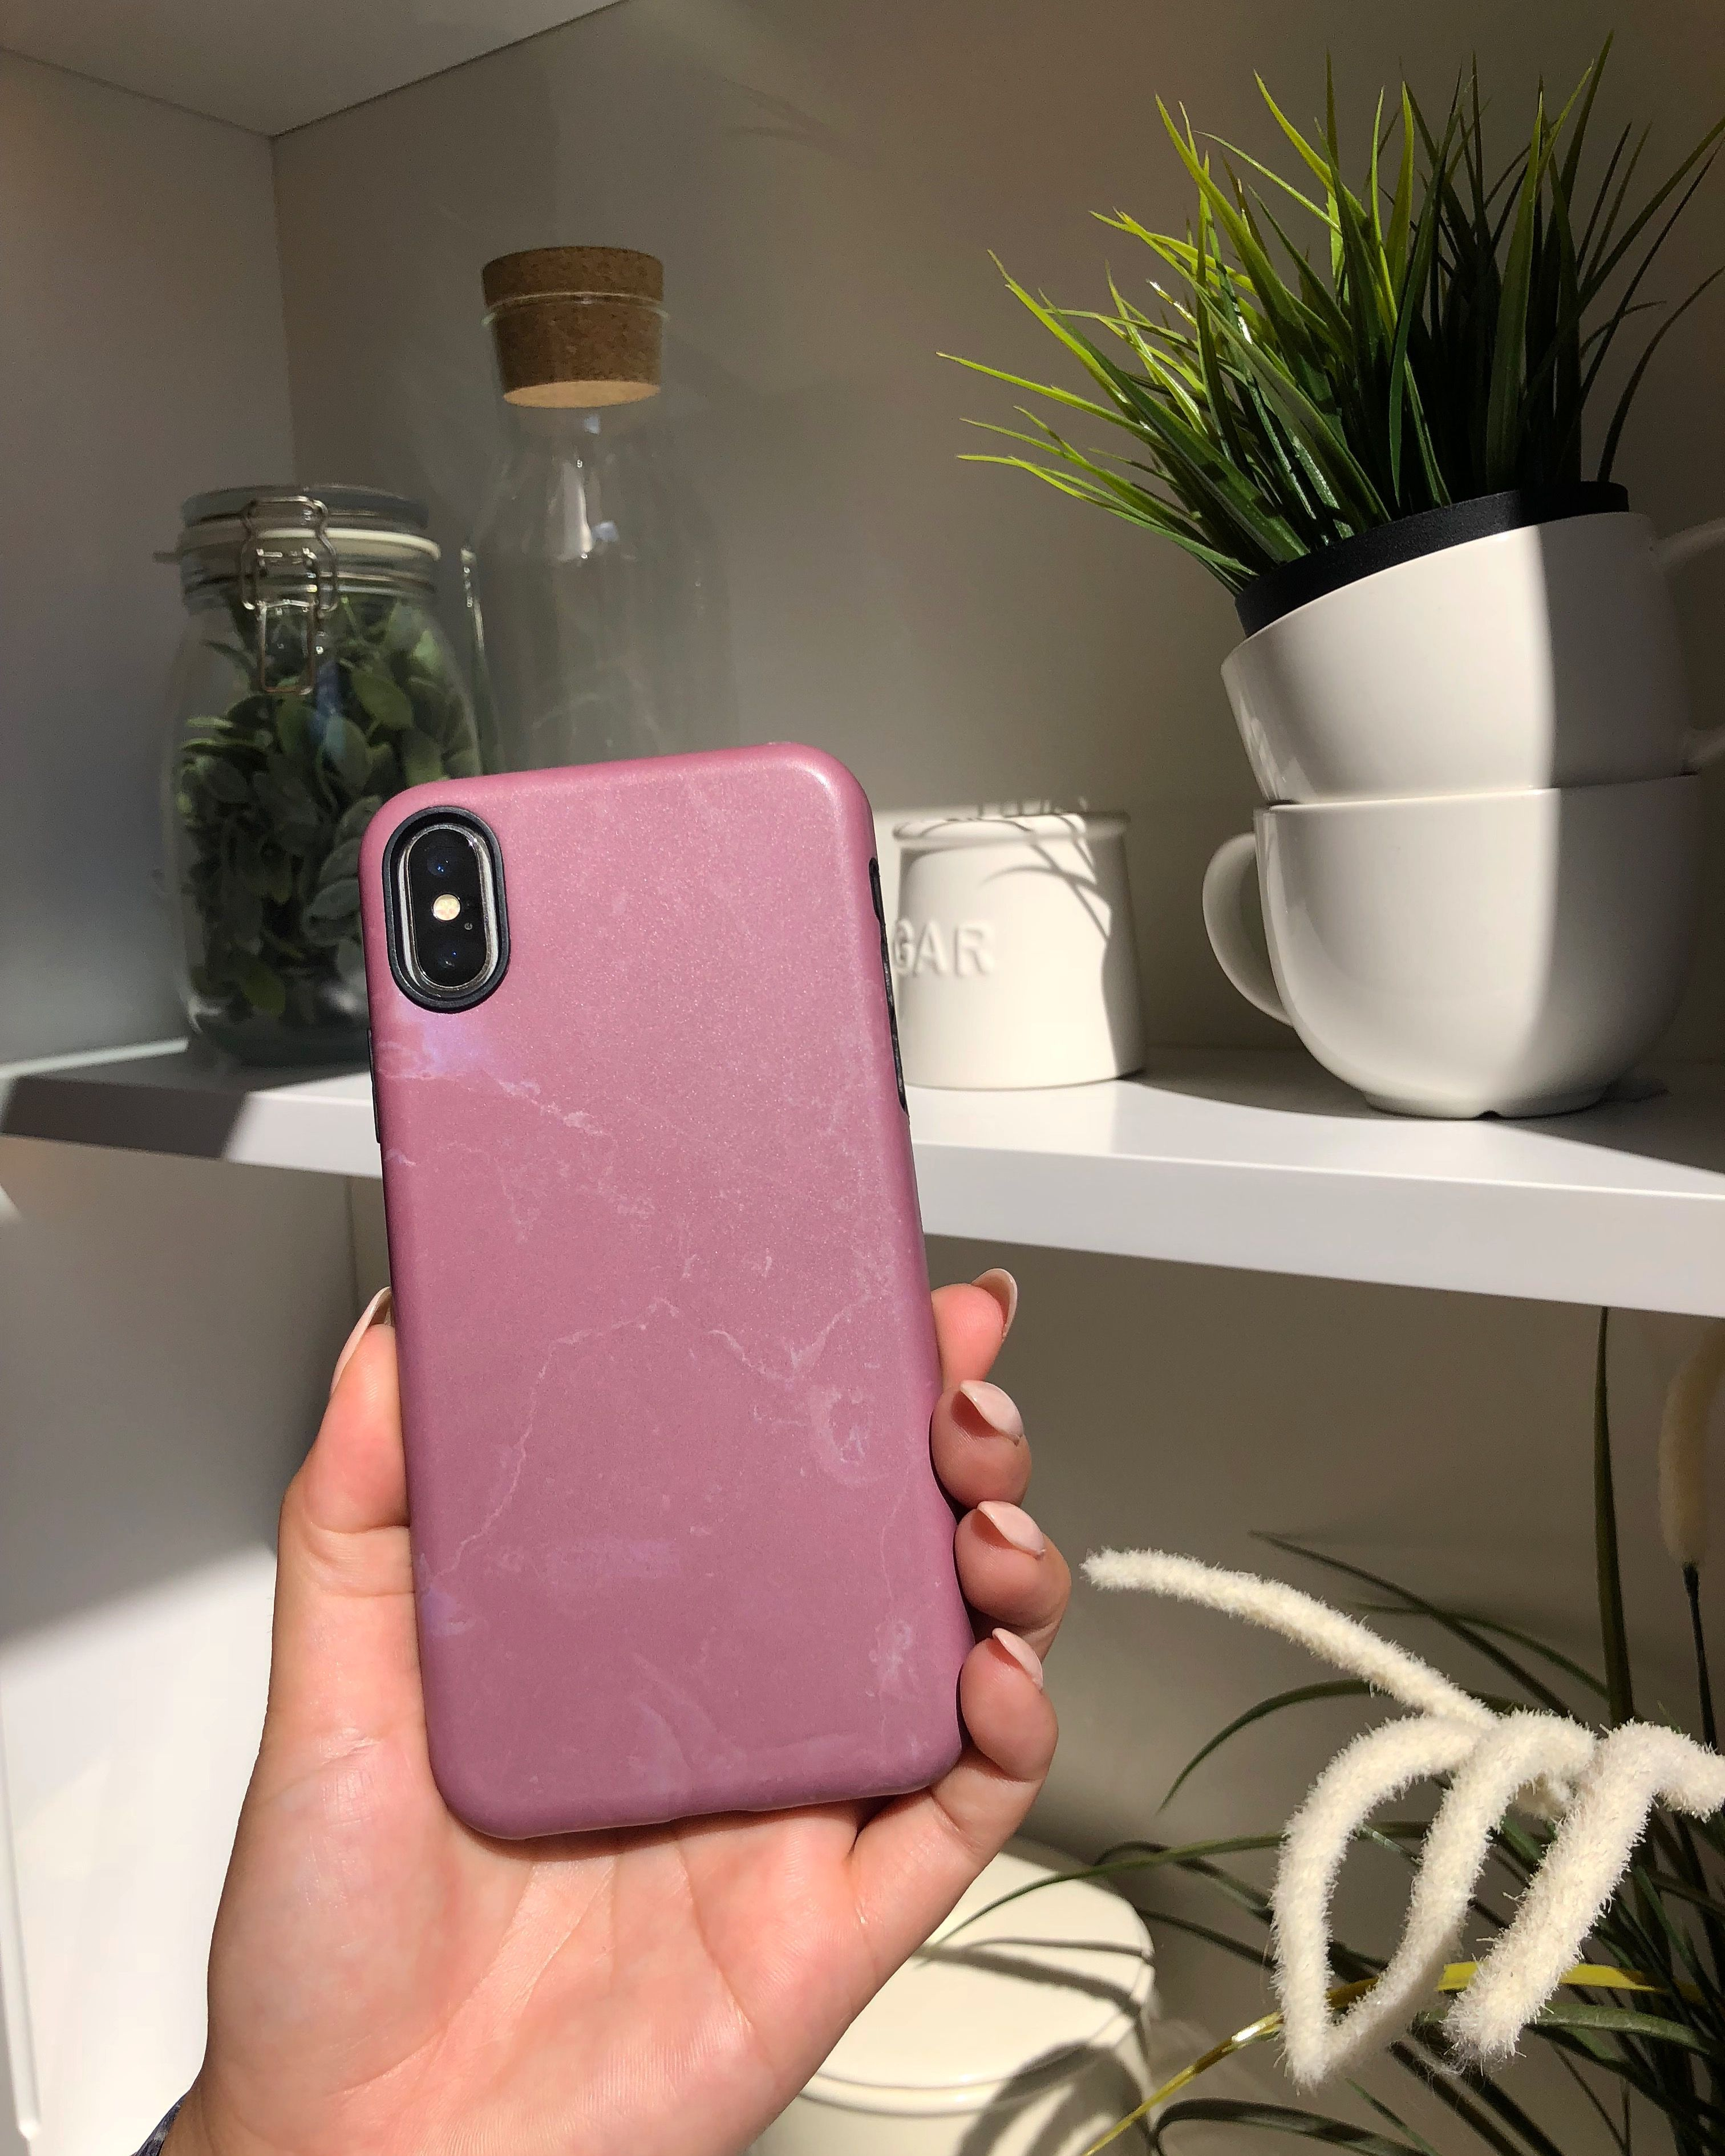 separation shoes cfc94 f8195 Aesthetic ⚪️💕⚪️ Blush Marble Case for iPhone X, iPhone 8 Plus ...